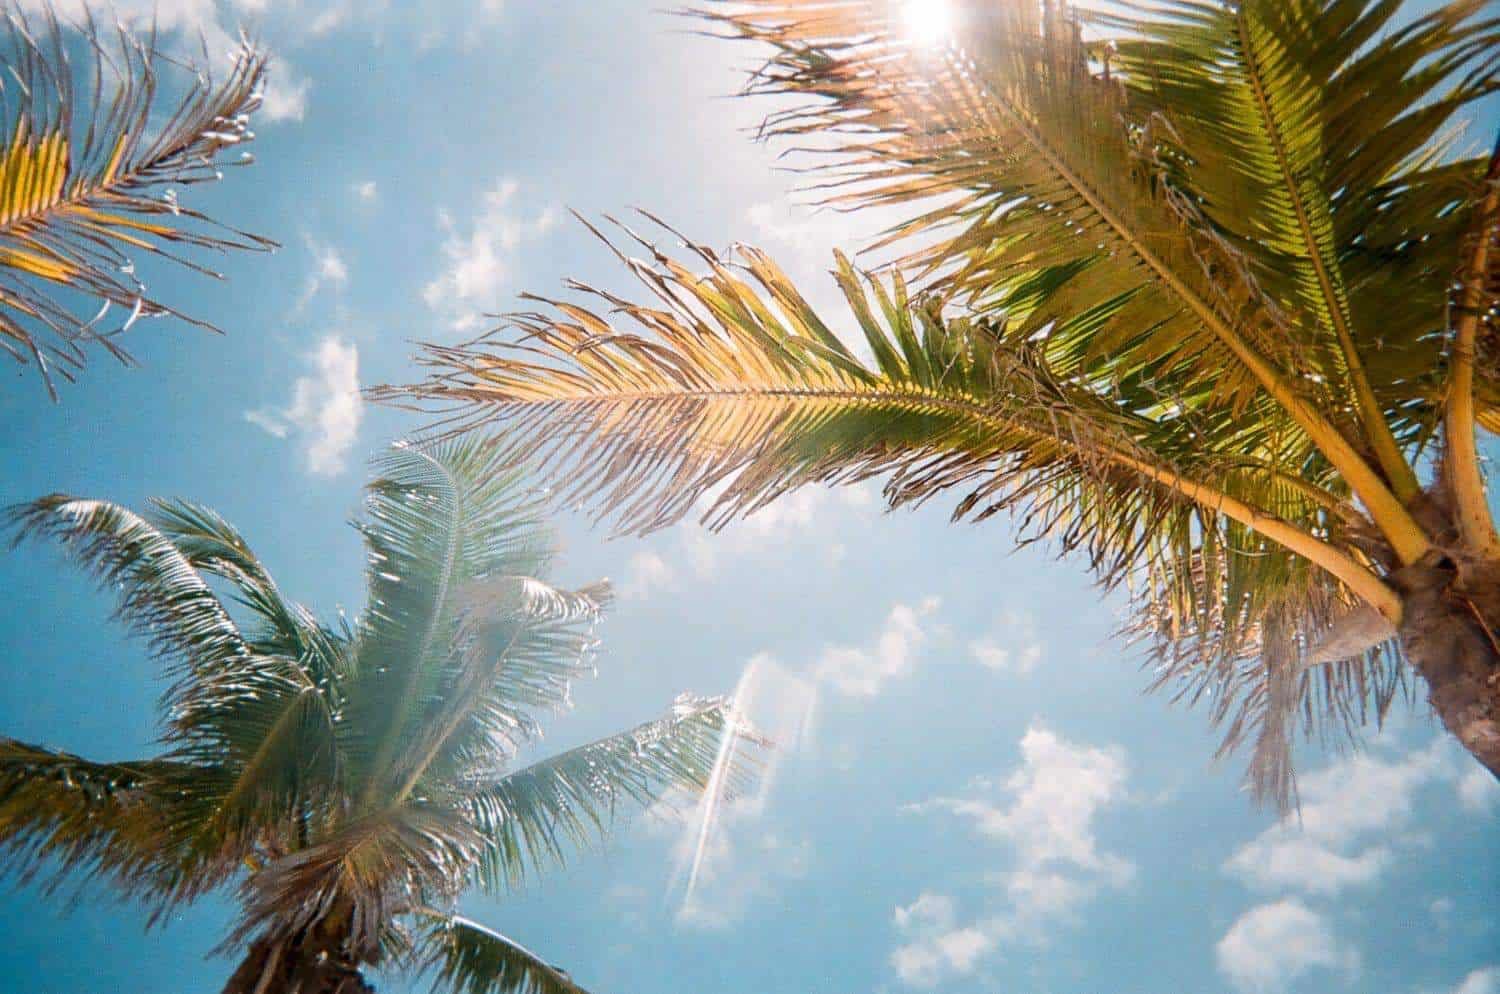 Palm trees and the sky in Florida.